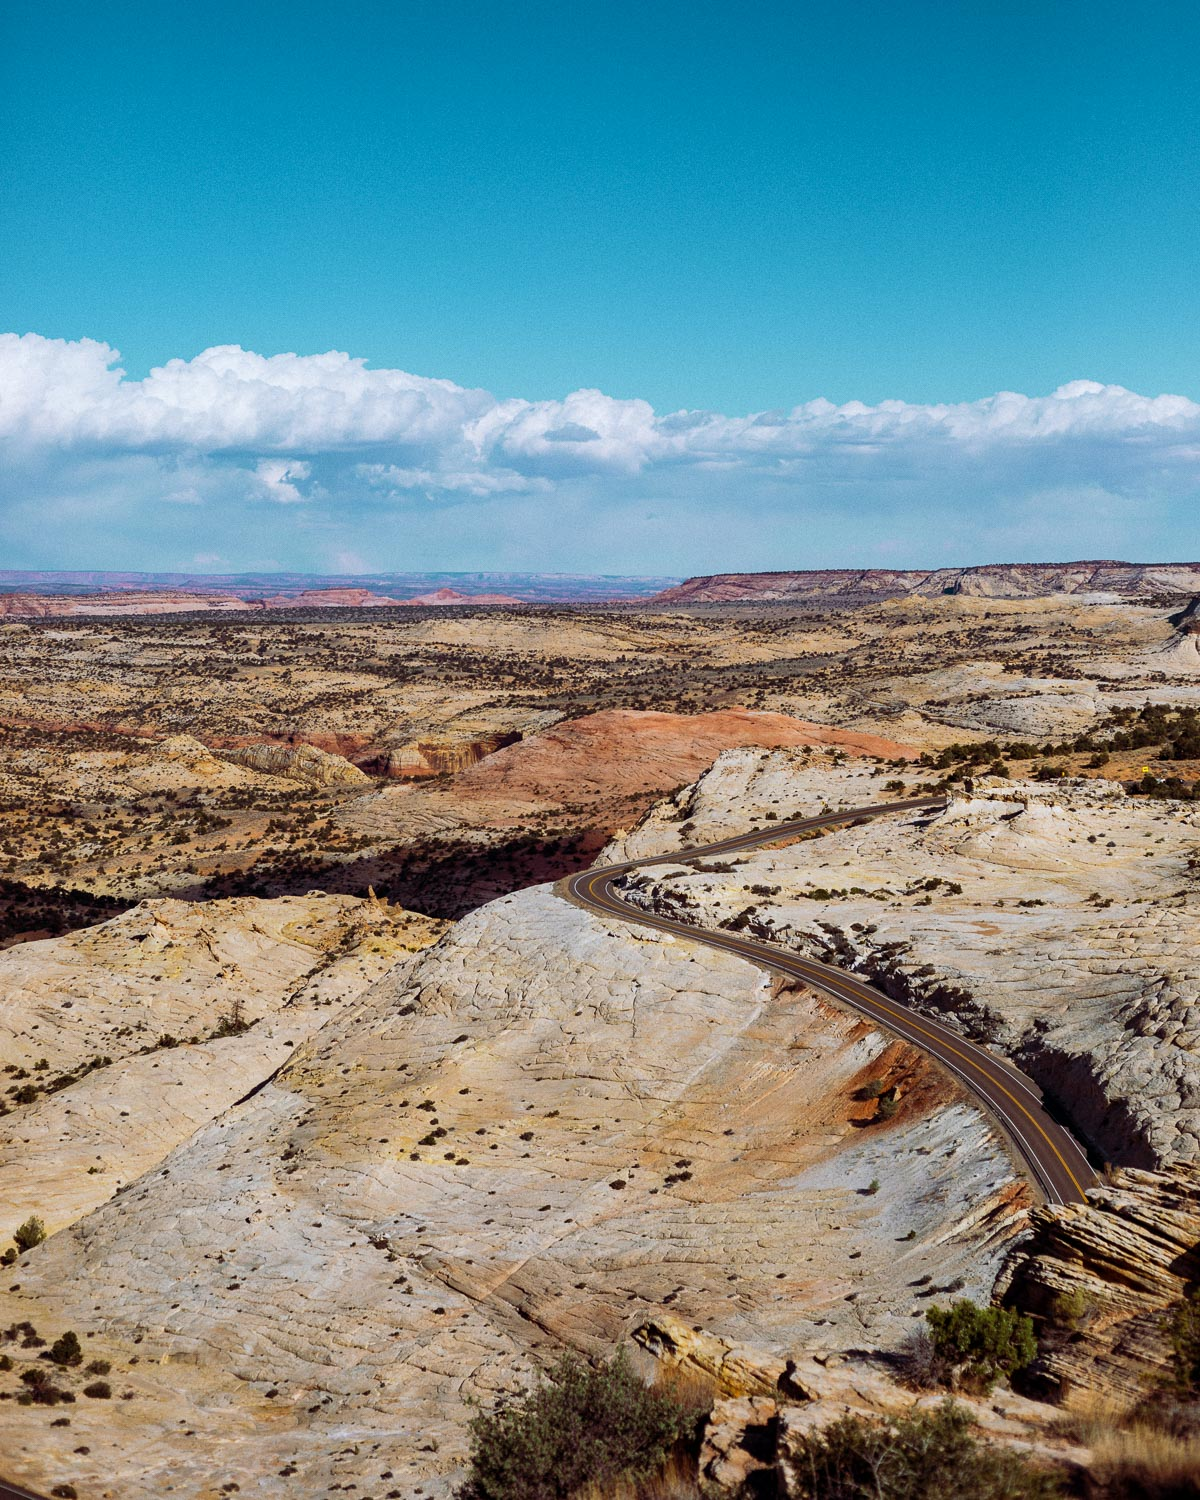 Rachel Off Duty: Views of Grand Staircase Escalante National Monument